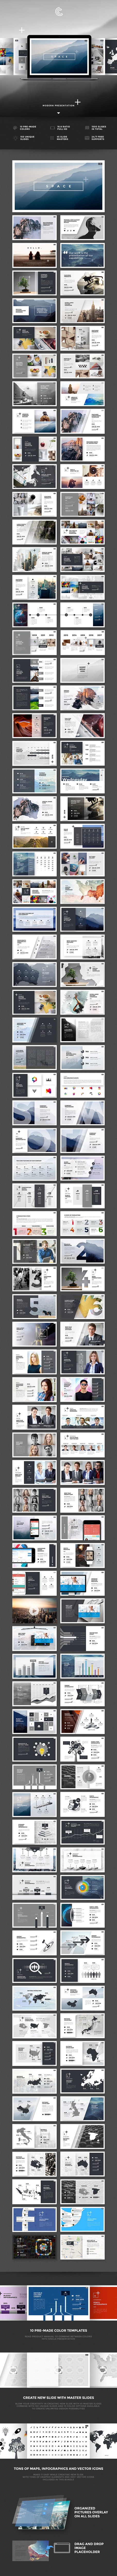 Space PowerPoint - PowerPoint Templates Presentation Templates